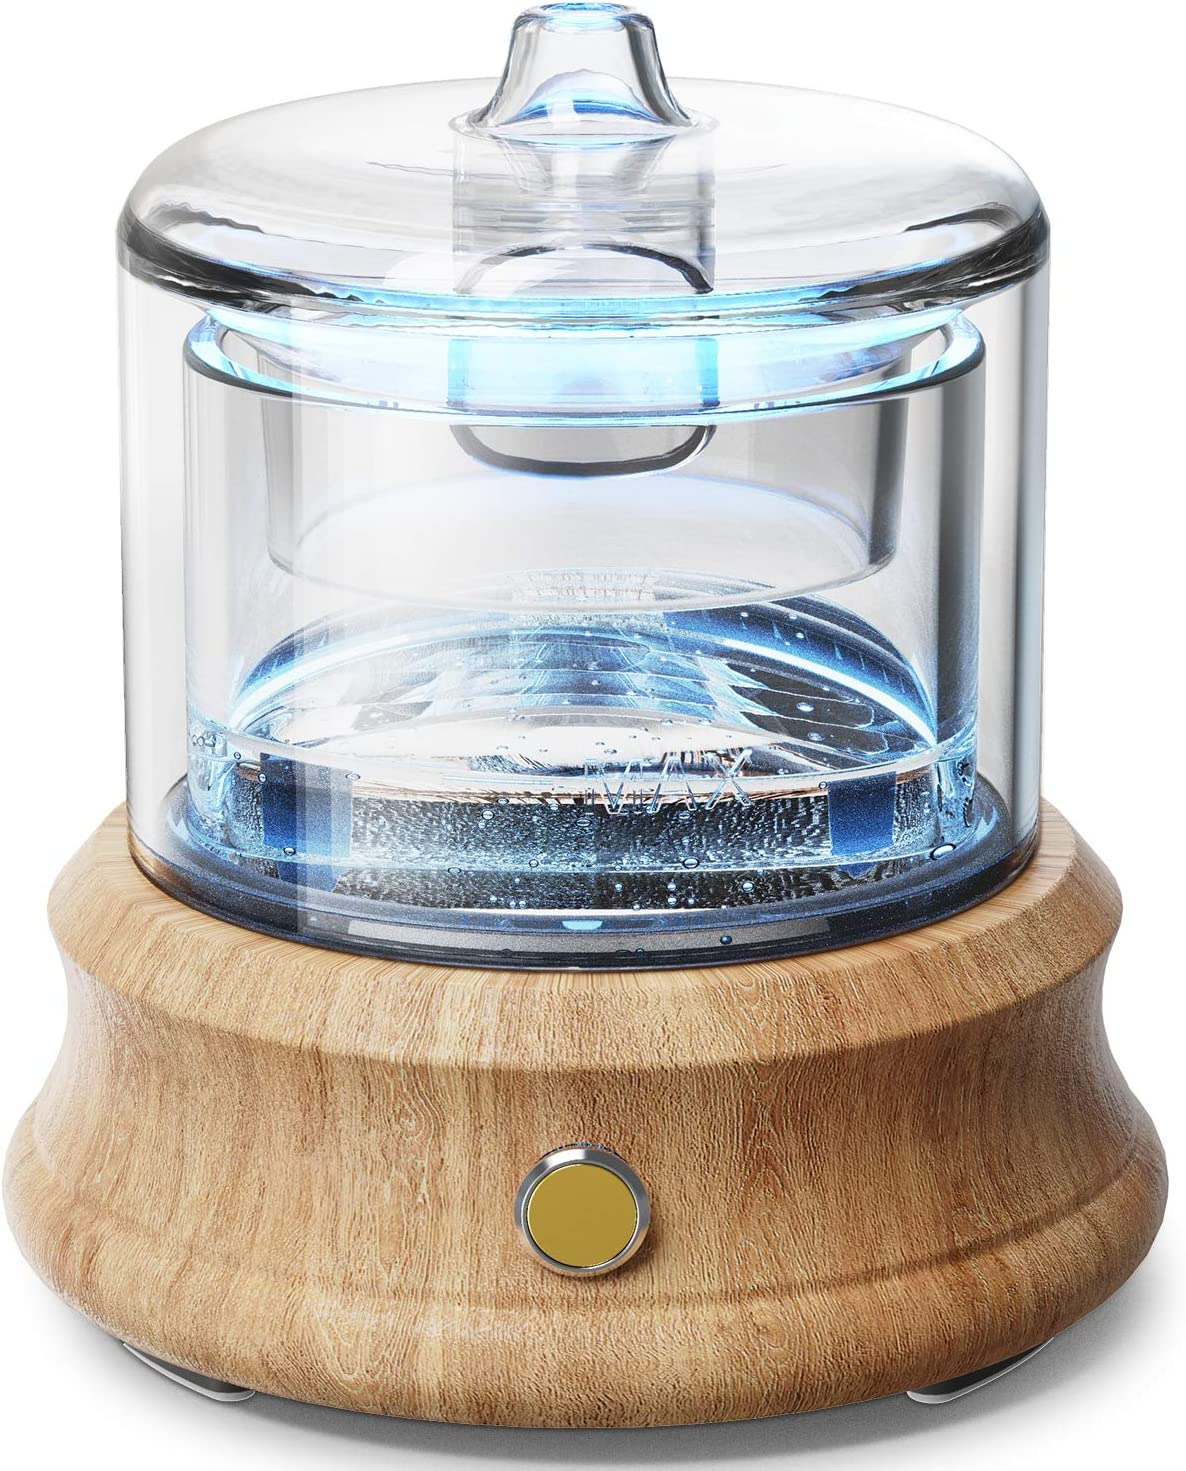 Glass Essential Oil Diffuser Humidifier, Glass Water Tank, Glass Cover, Real Wood Base, Waterless Auto Shut-Off 7 Colors Light Aroma Diffuser for Bedroom Home Living Room Office Mom Gift 80 ML